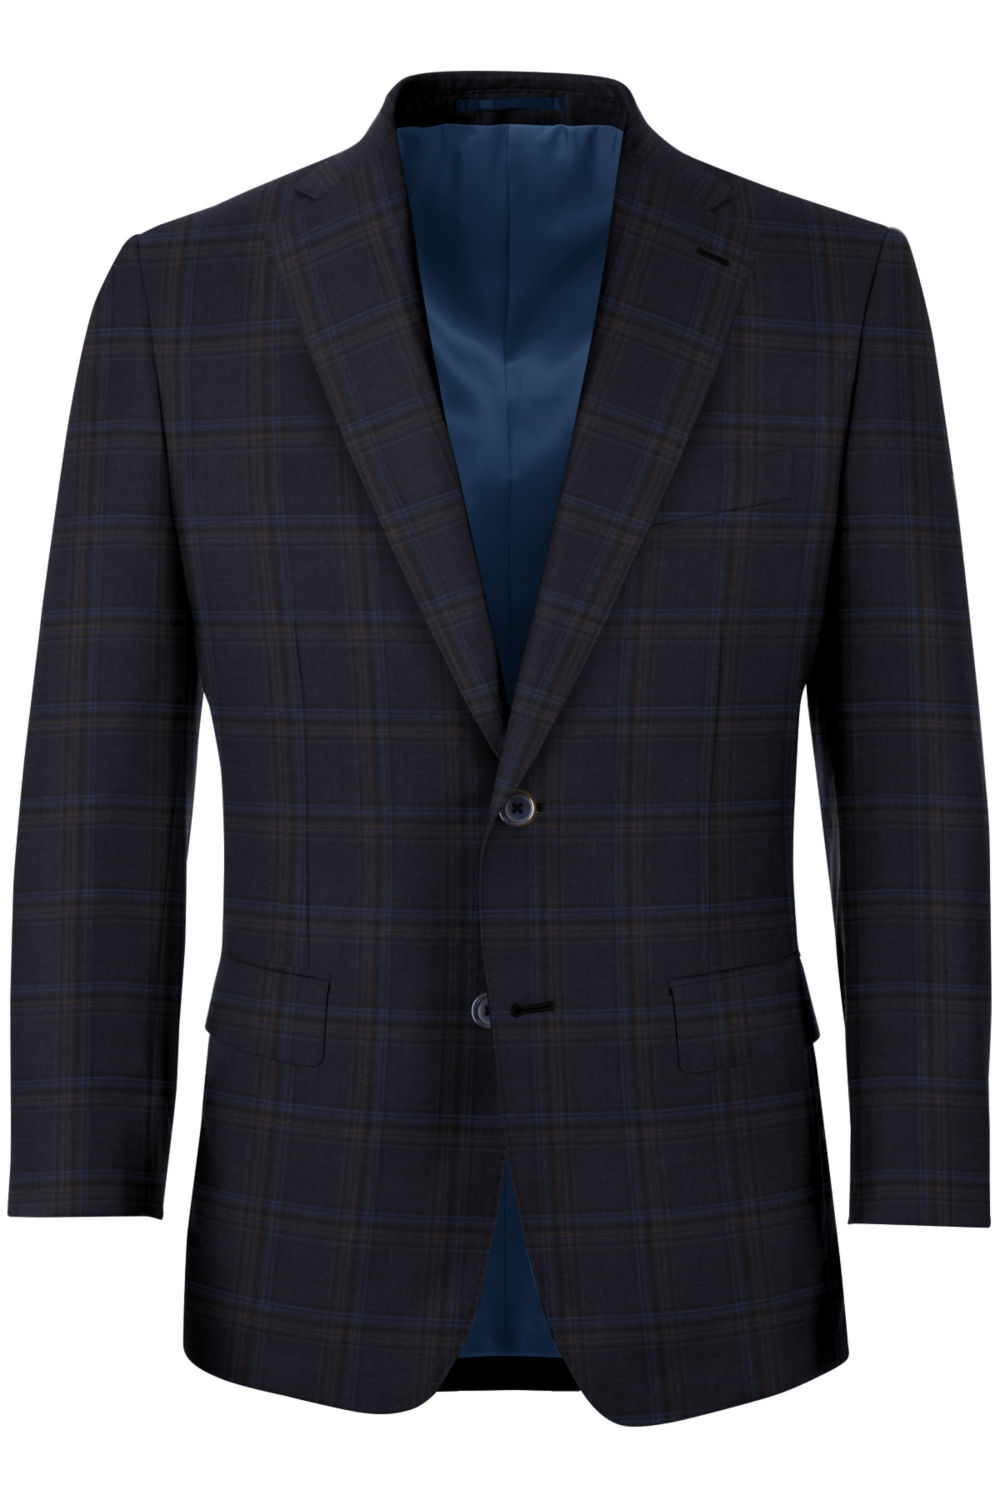 Navy, Lt. Blue & Brown Plaid